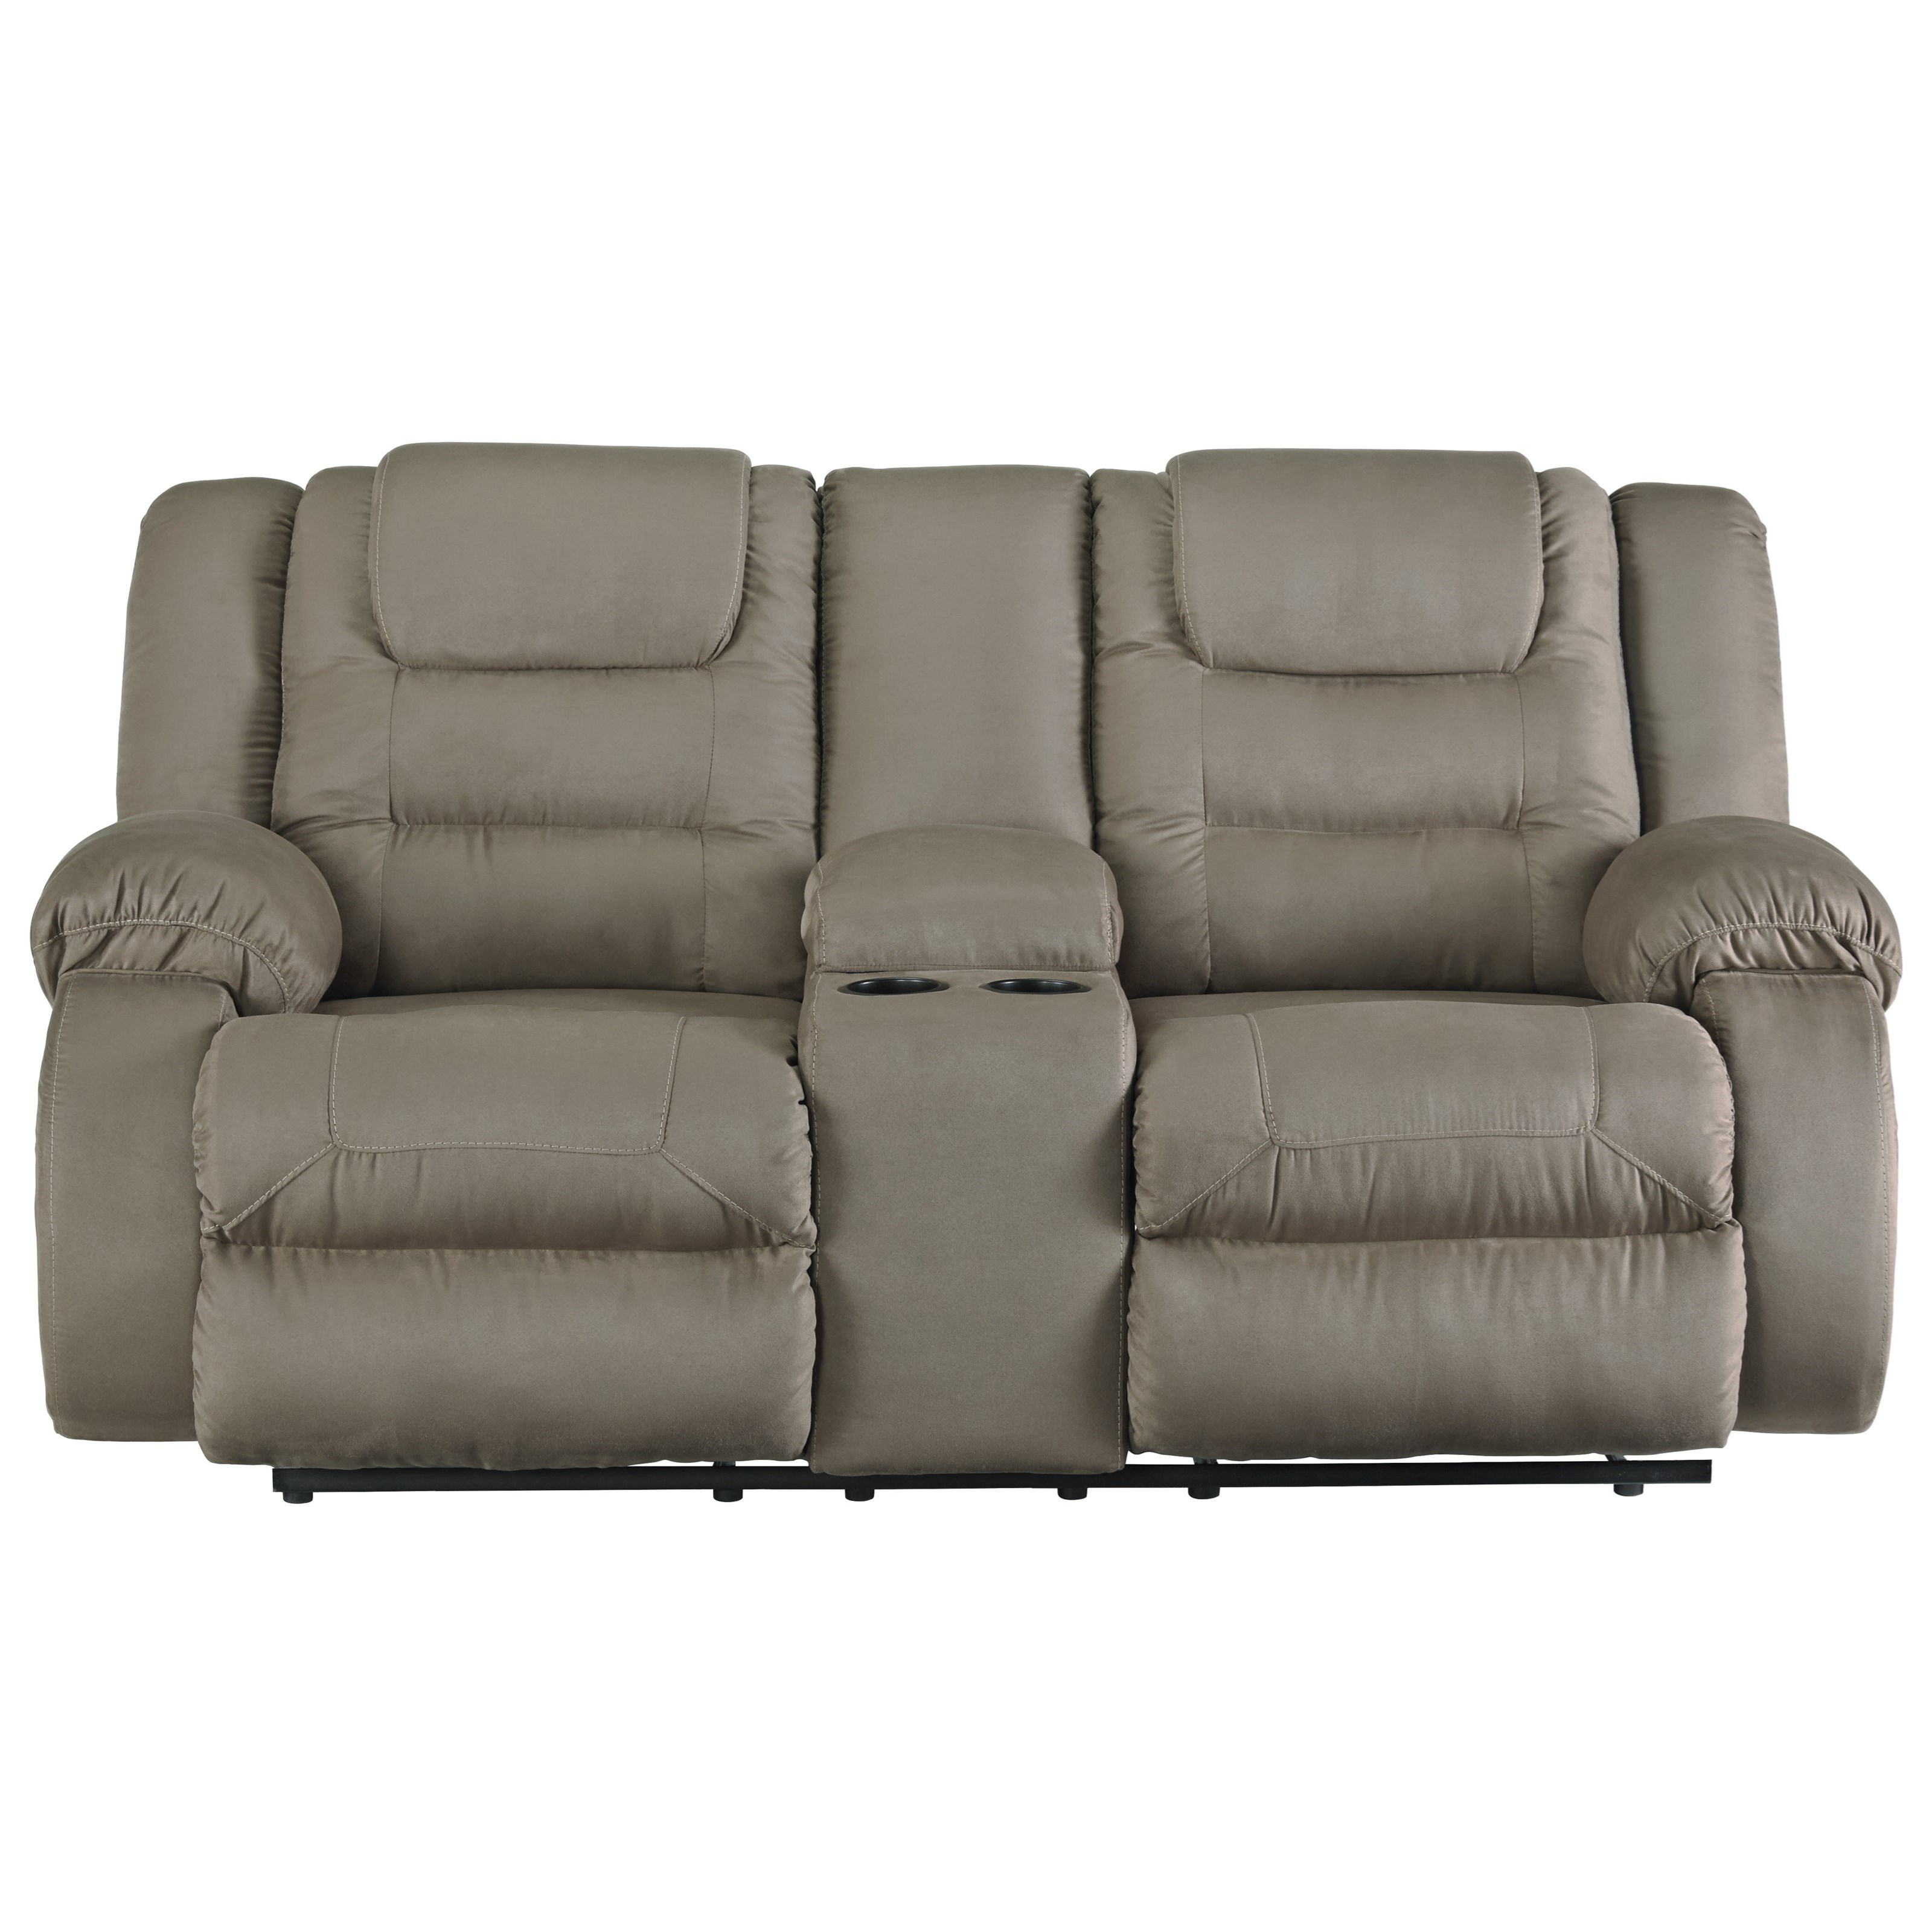 Double Reclining Loveseat With Center Console By Signature